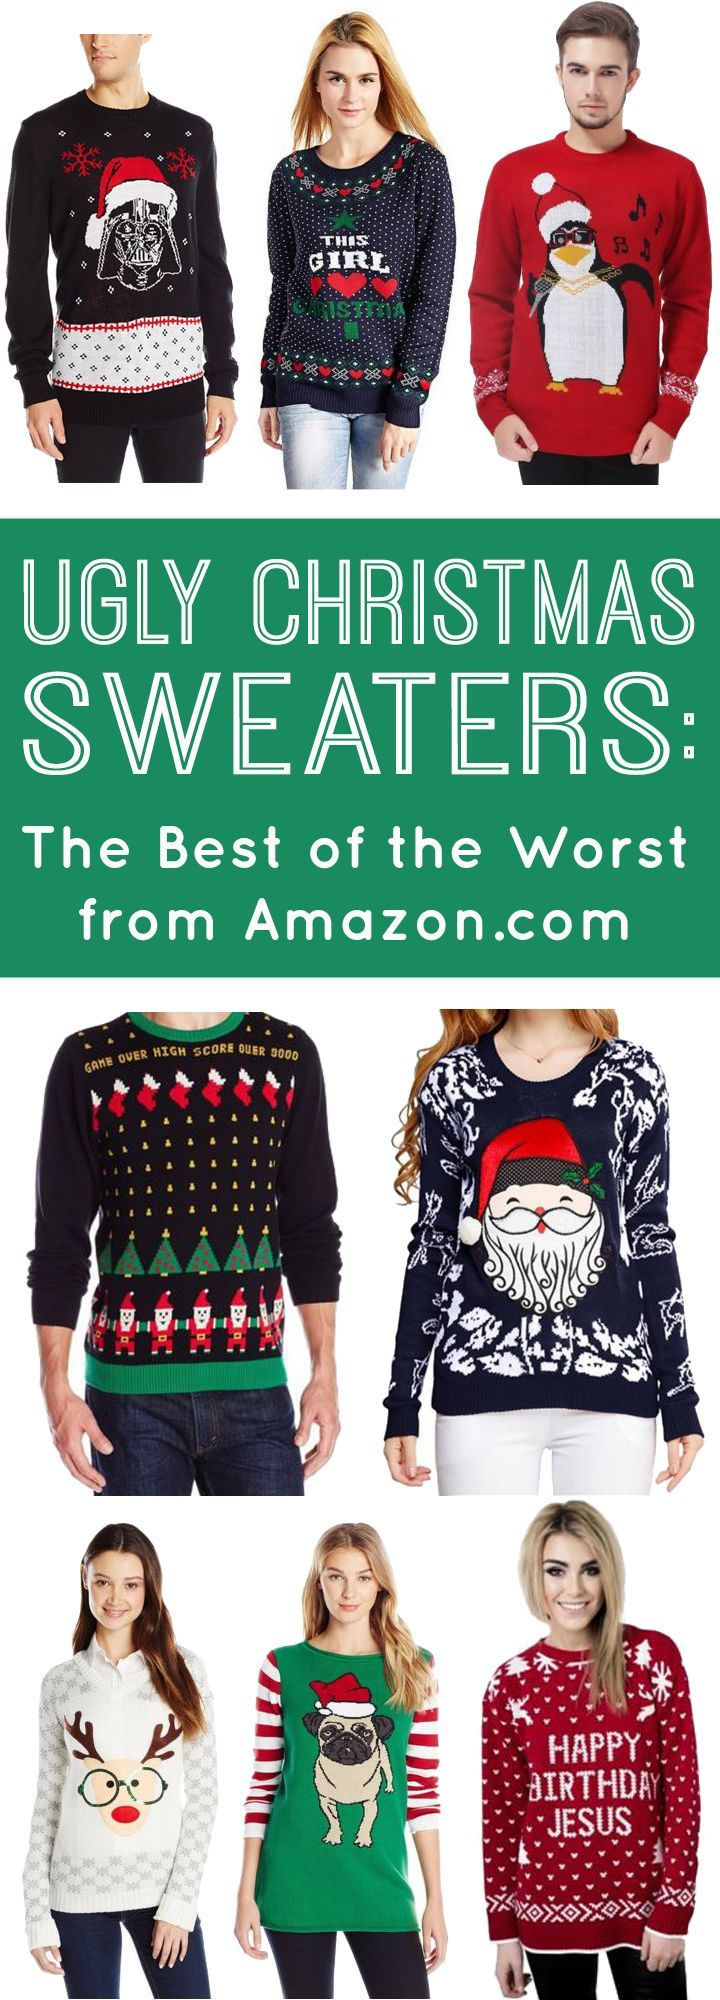 Ugly Christmas Sweaters: The Best of the Worst from Amazon.com ...